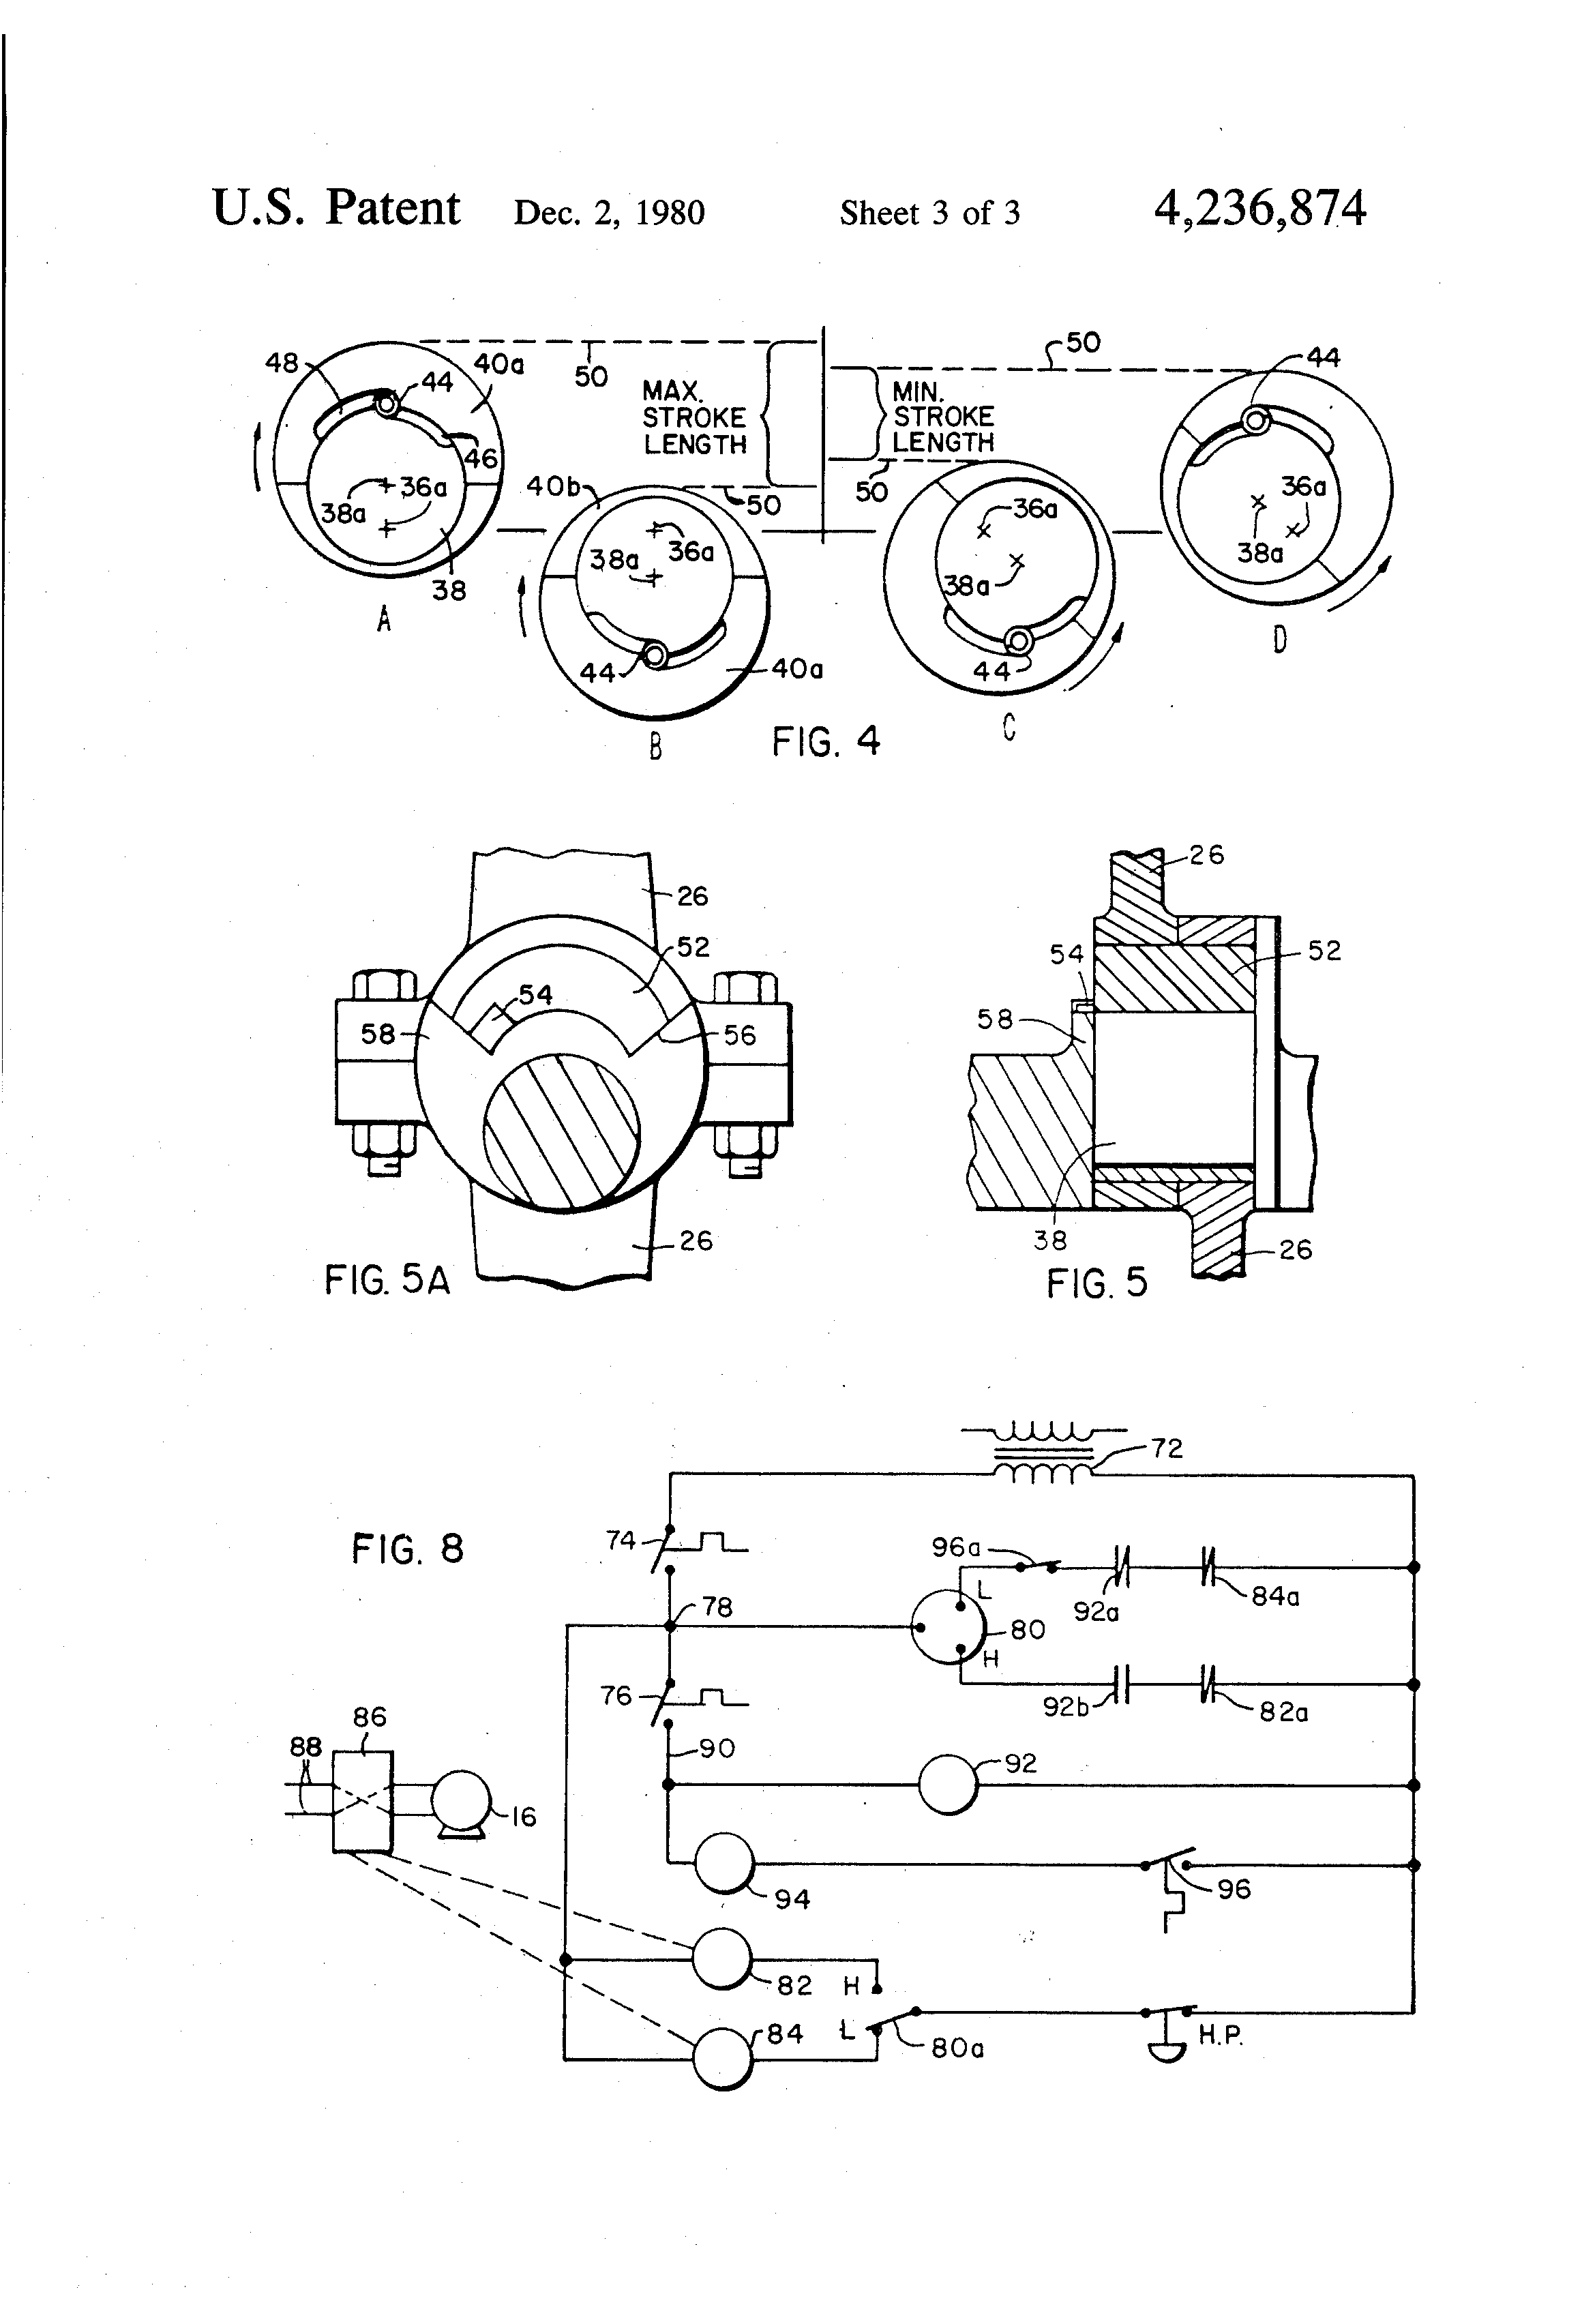 Compressor Archives Hvac School Hard Start Kit Wiring Diagram The On This One Is Pretty Vague But General Idea A Swapping Of Phases To Motor R S Reverse